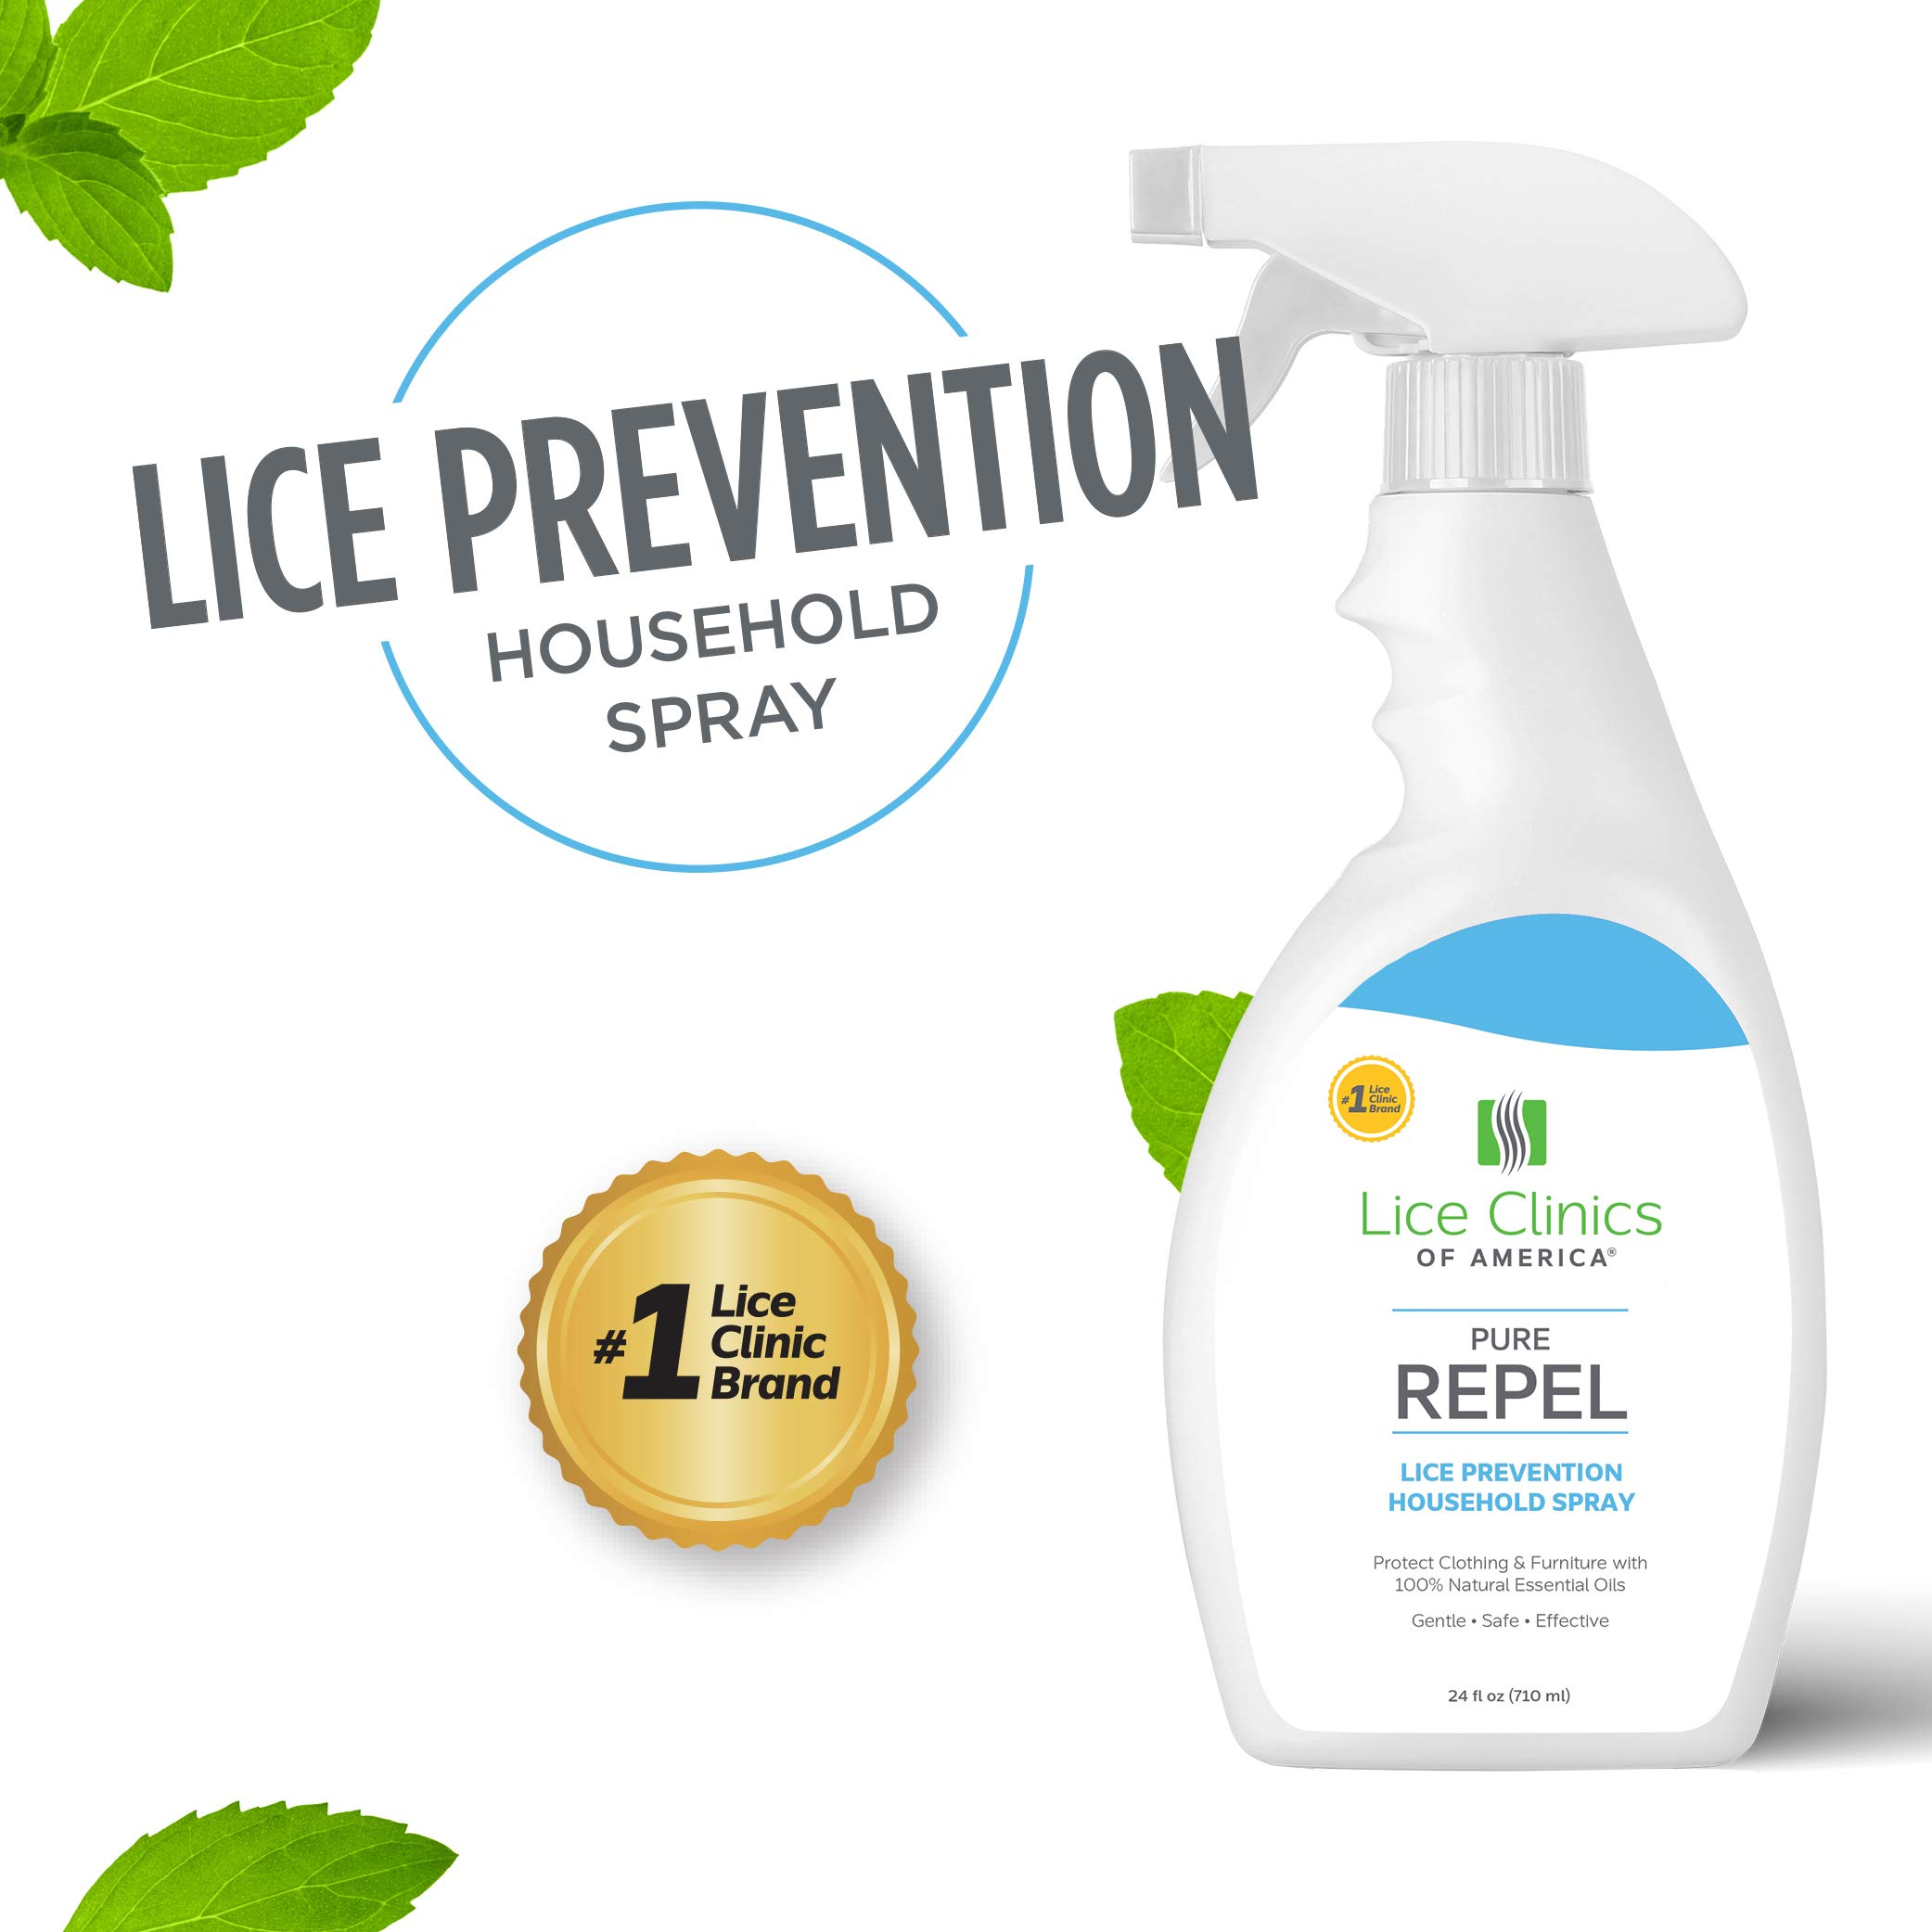 Lice Clinics of America Lice Prevention Household Spray - Keep Lice Away from Clothing, Furniture, and More! by Lice Clinics of America